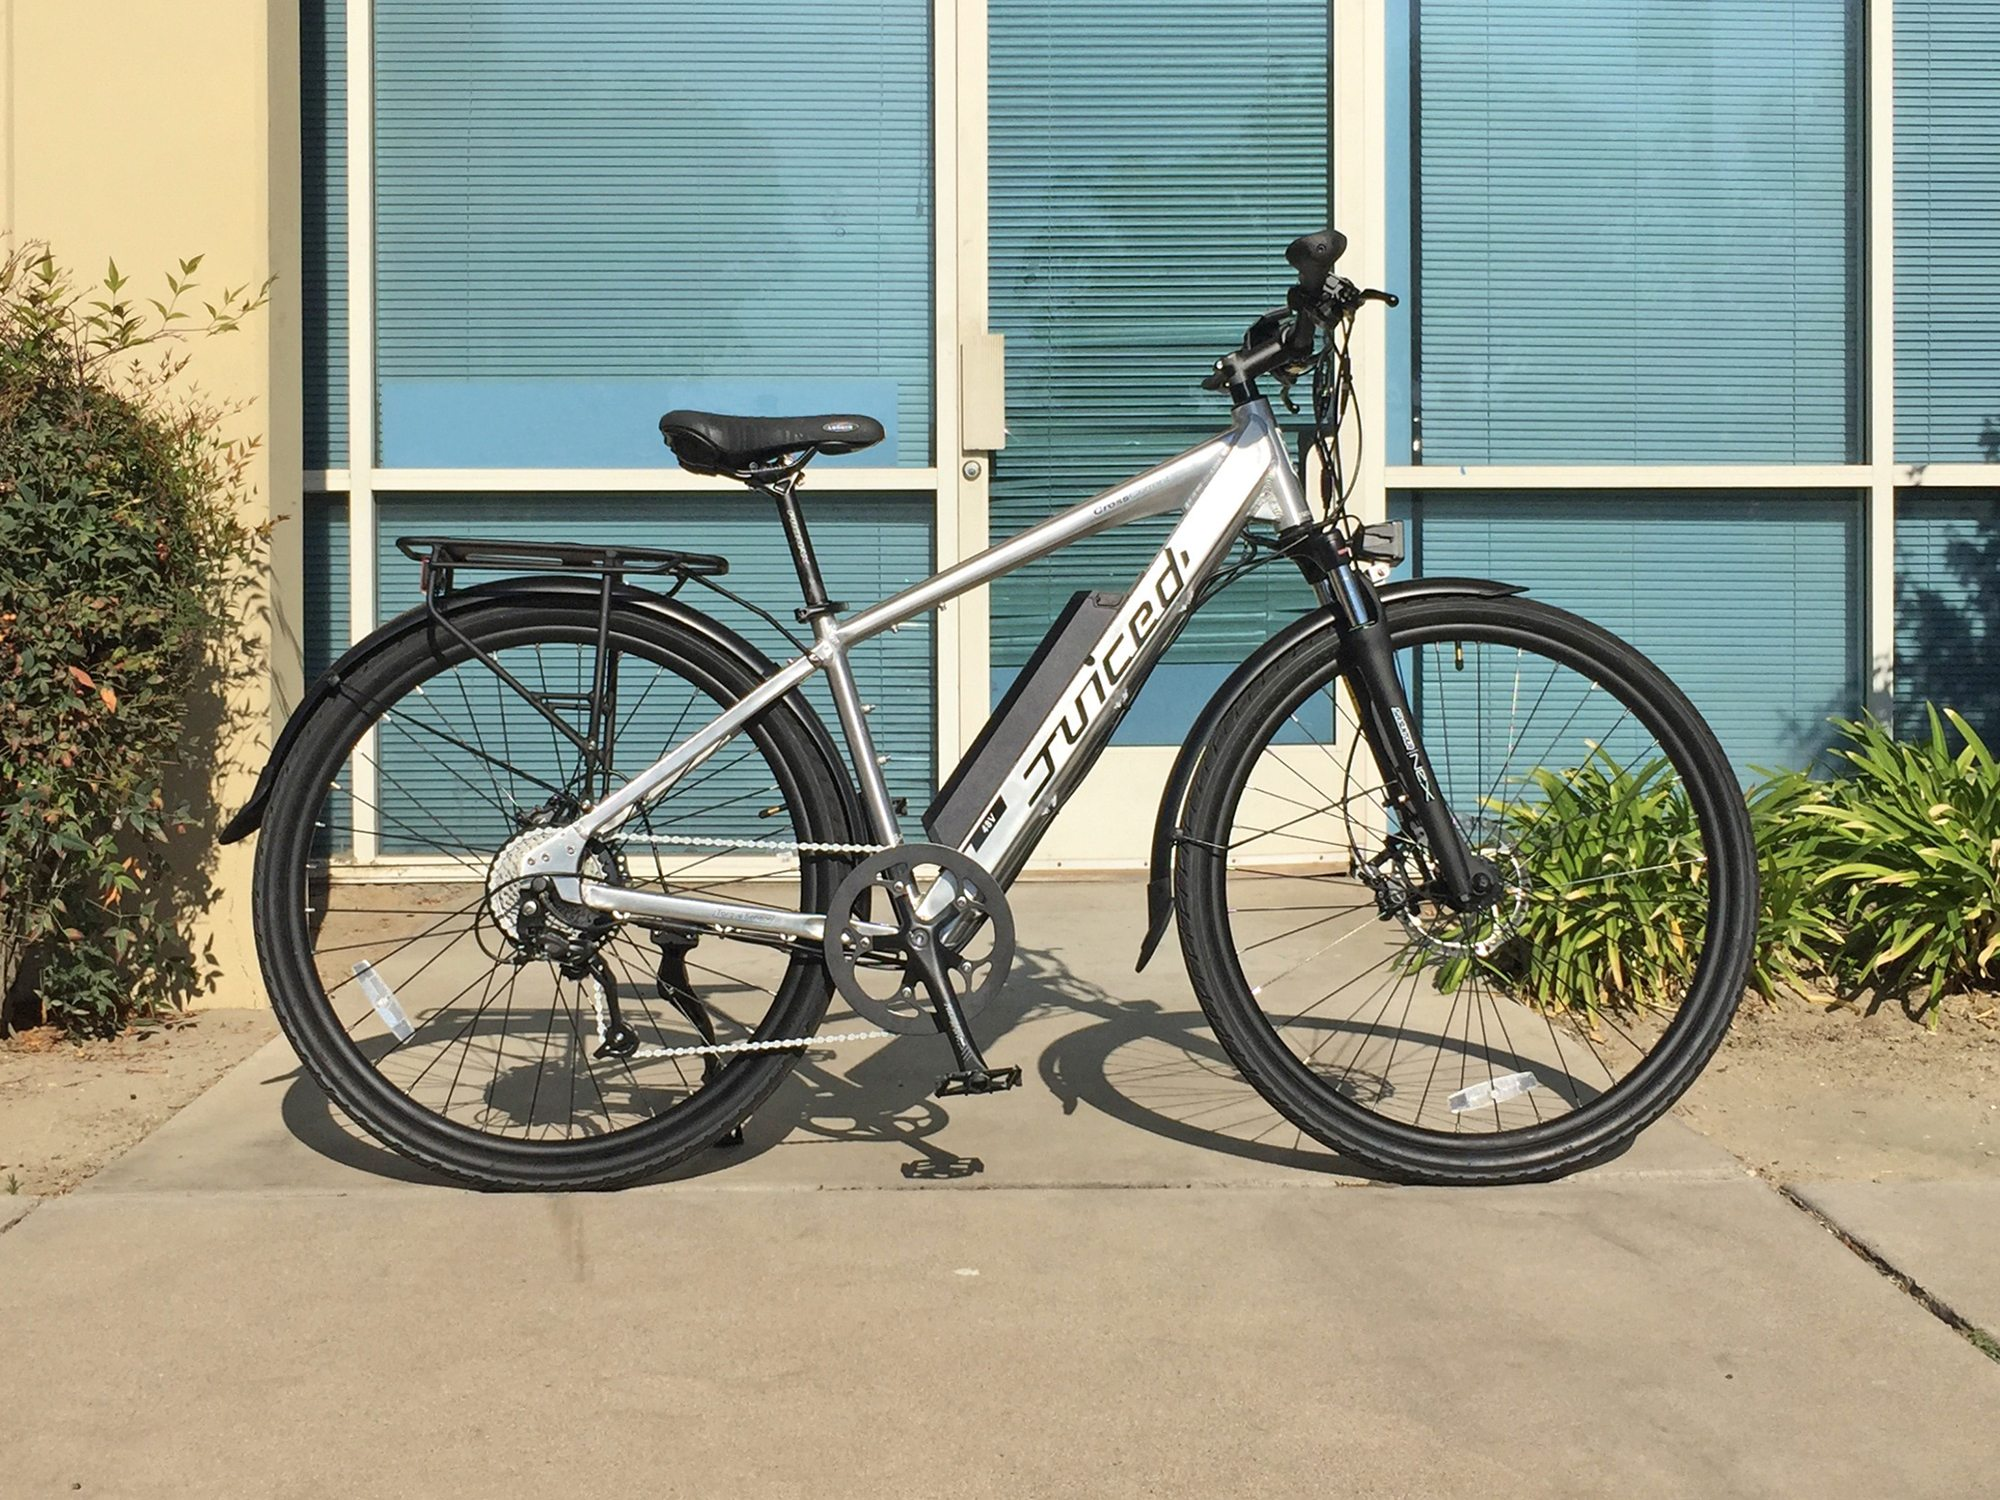 Juiced Bikes CrossCurrent S Review - Prices, Specs, Videos, Photos